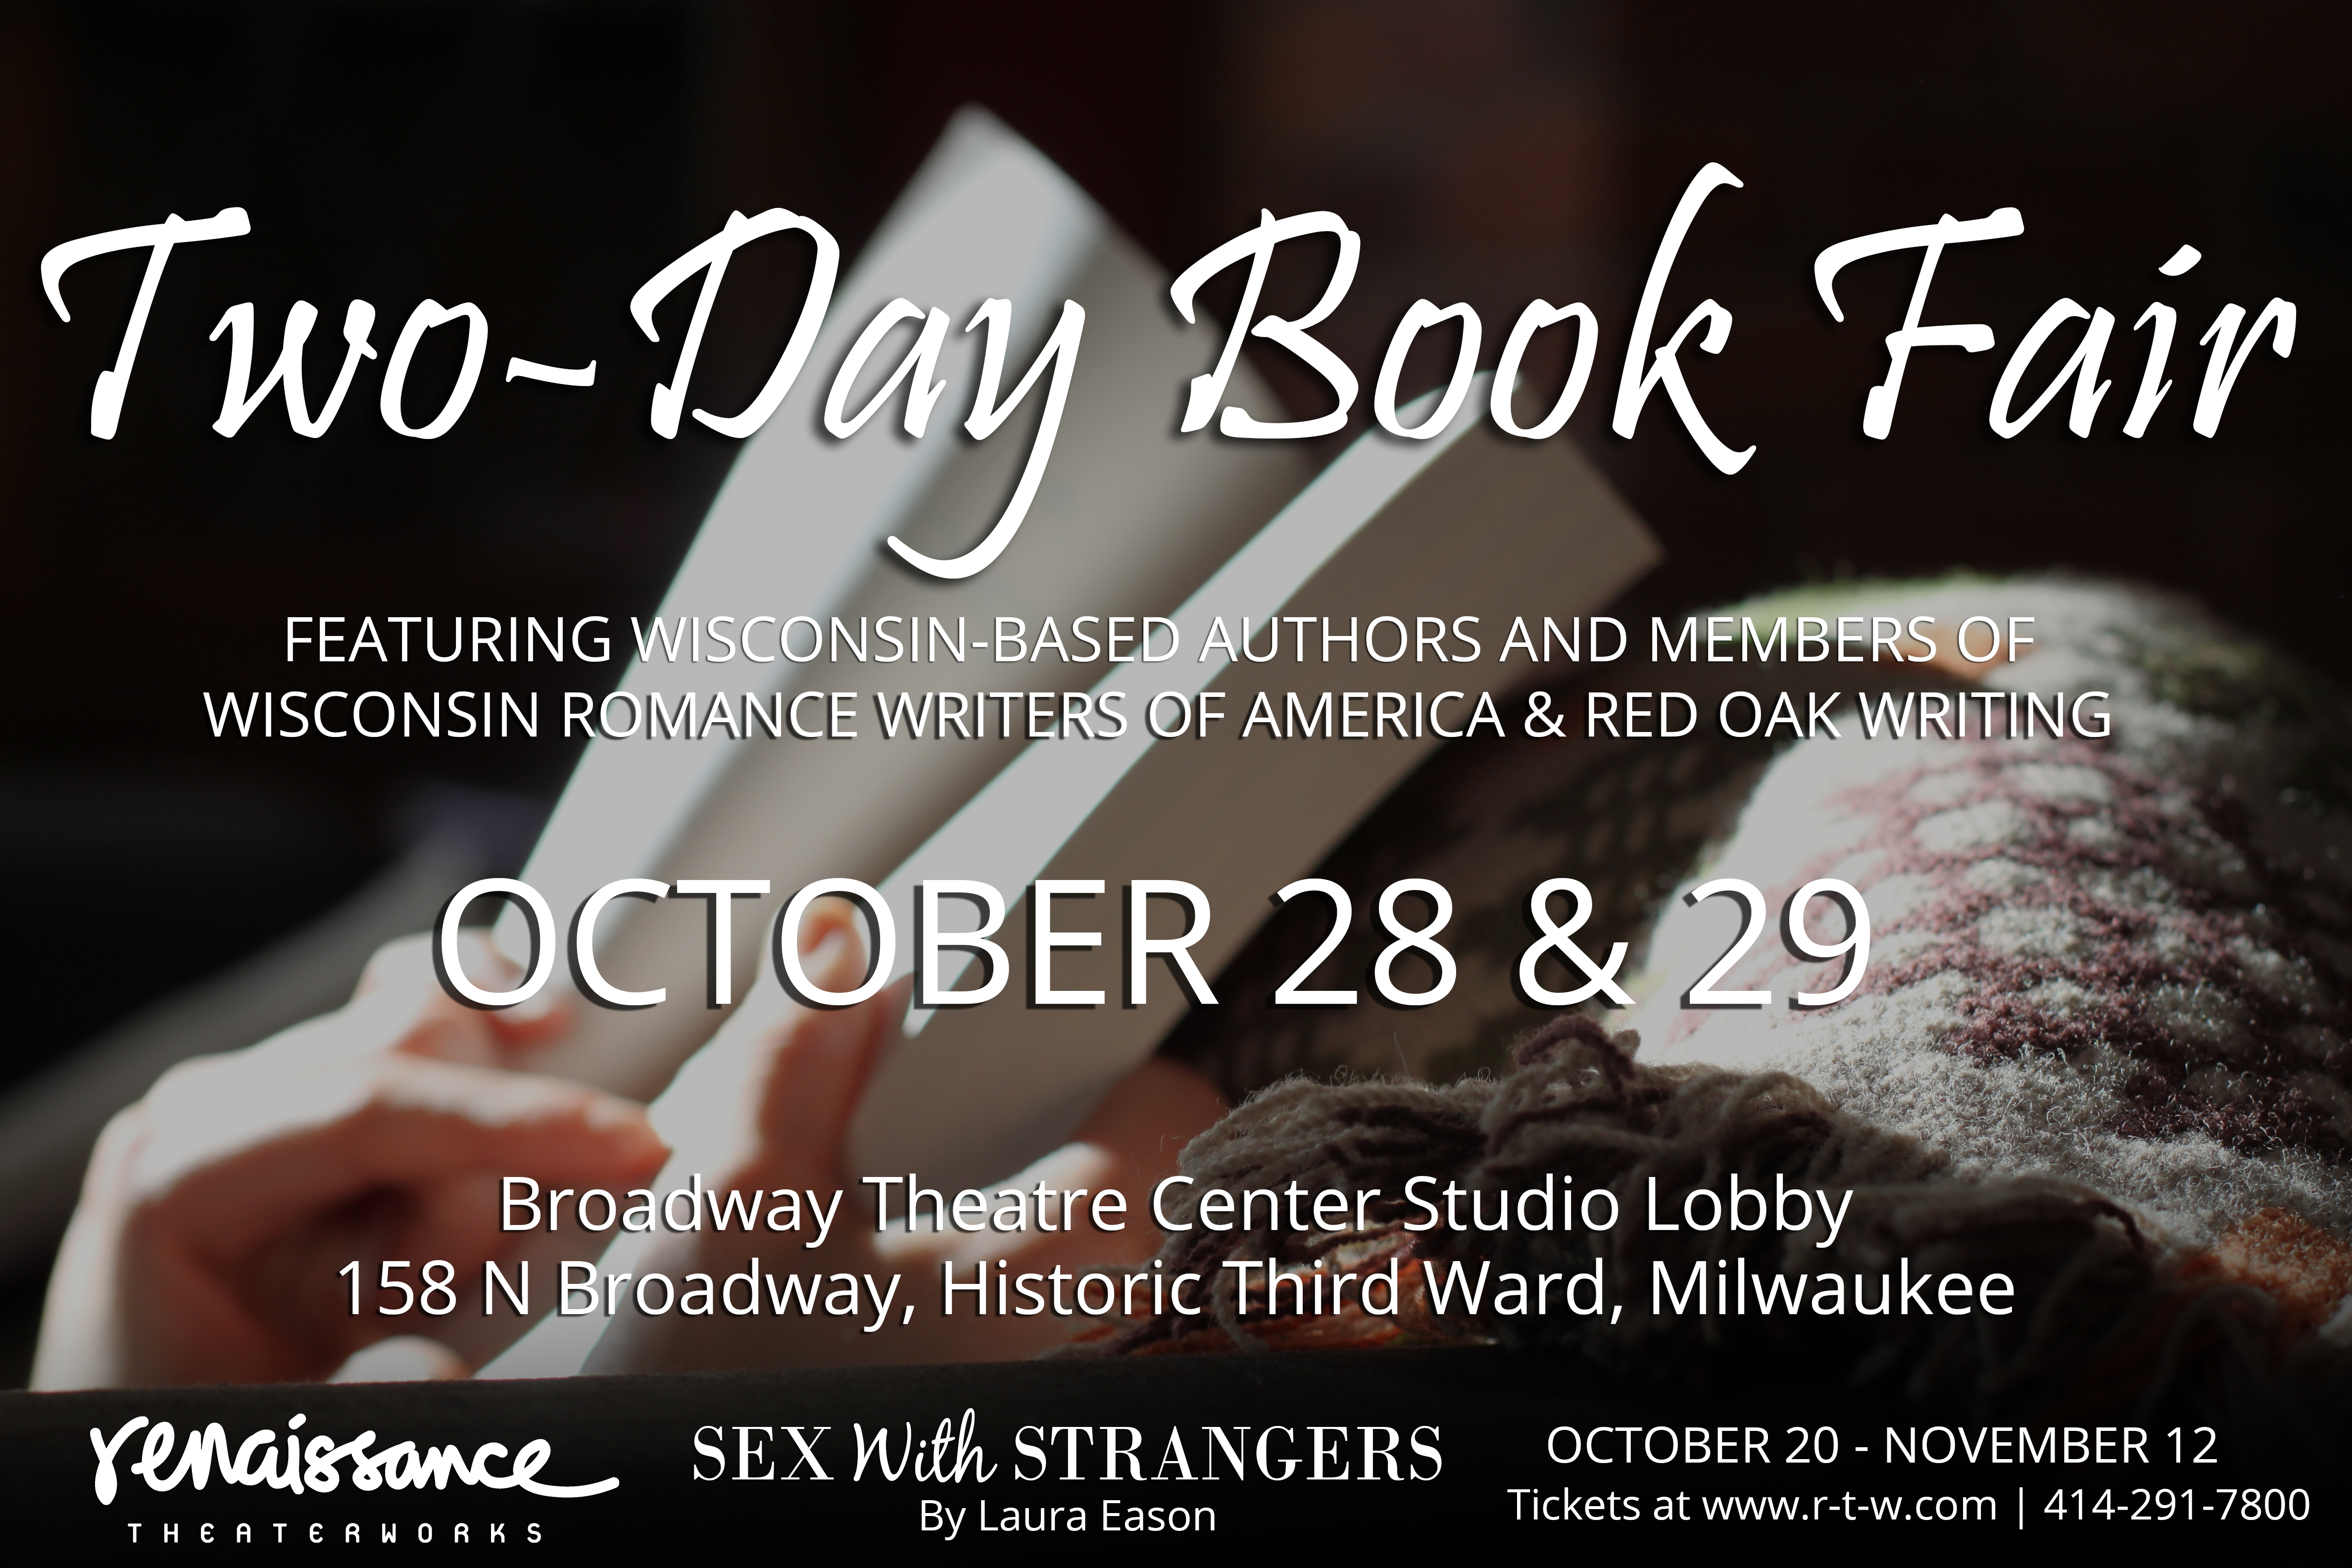 Will Be Filled With Published Wisconsin Authors Before During And After Performances Of Renaissance Theaterworks Production SEX WITH STRANGERS